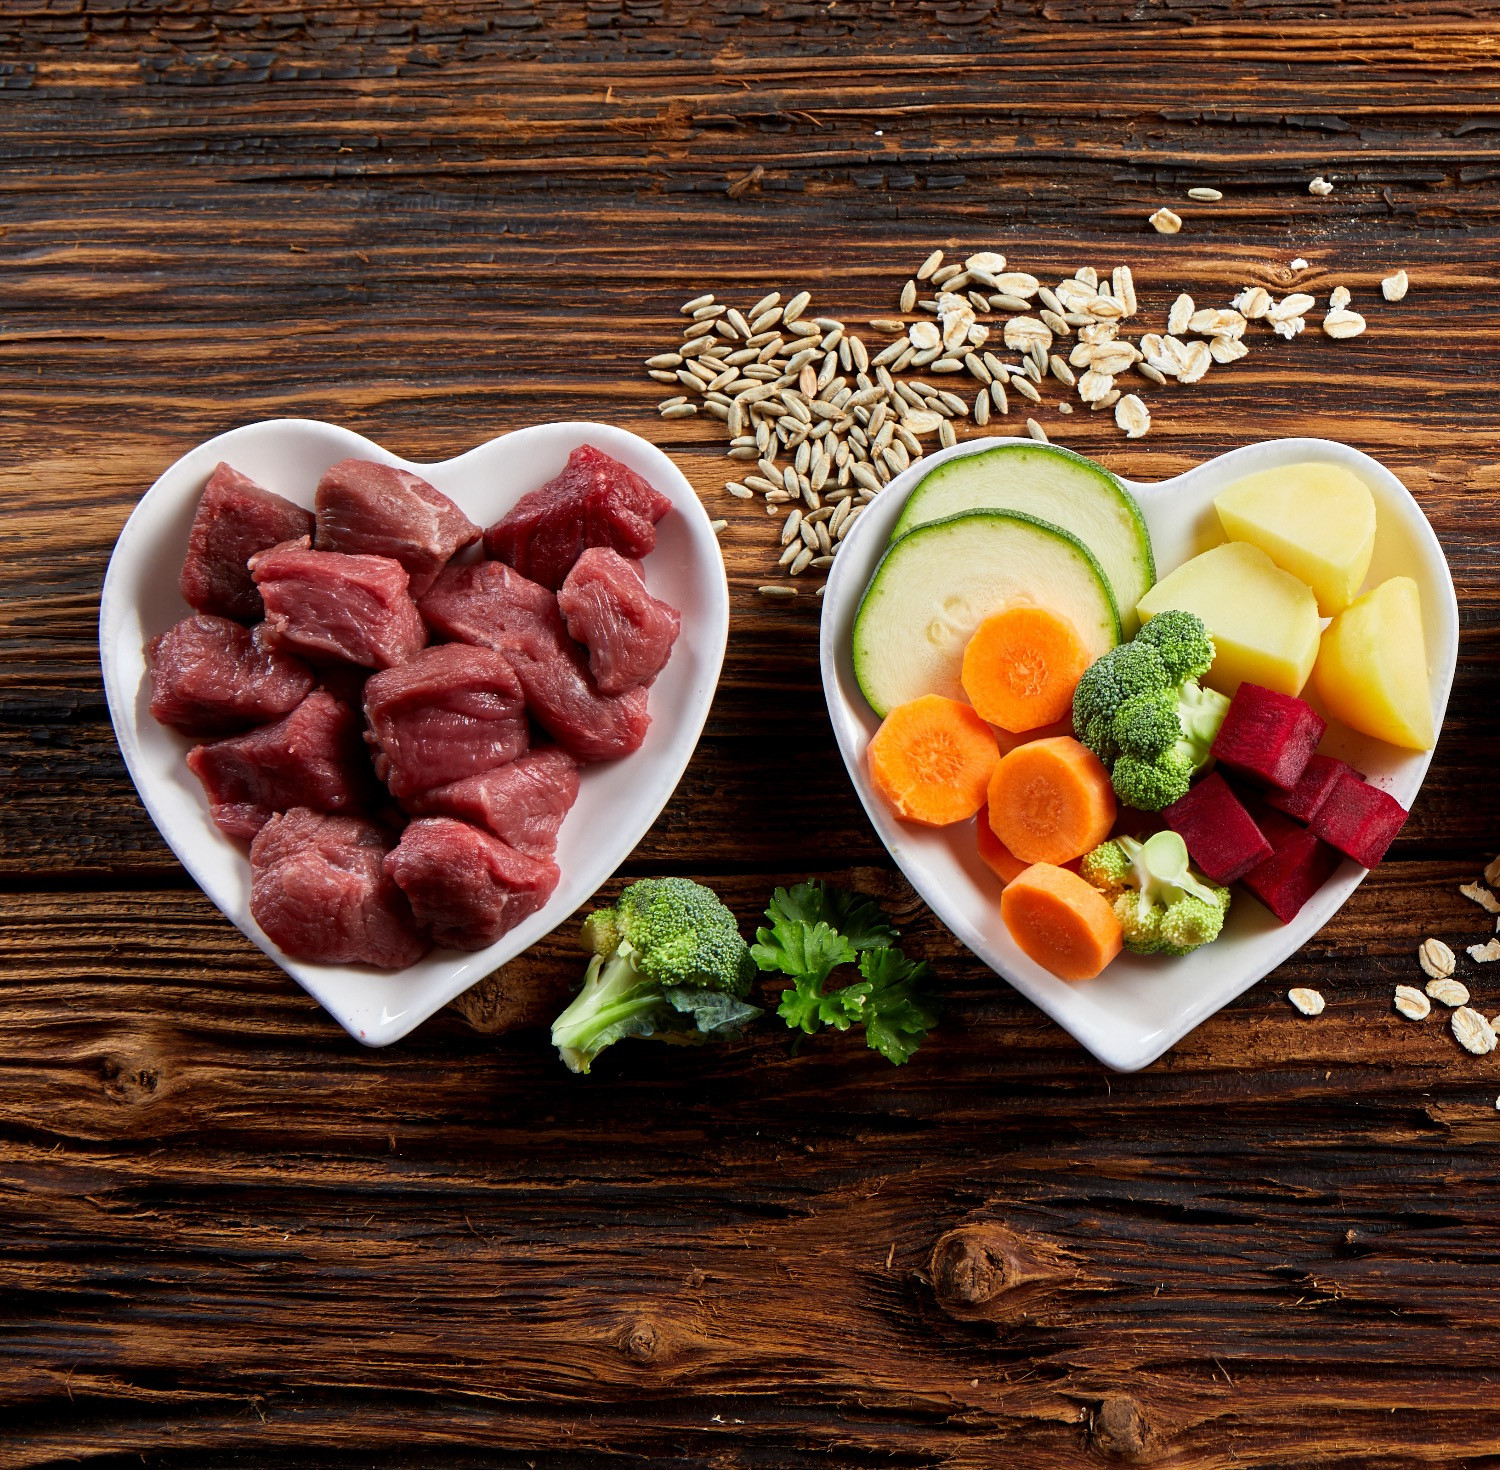 Diets and advice for chronic issues